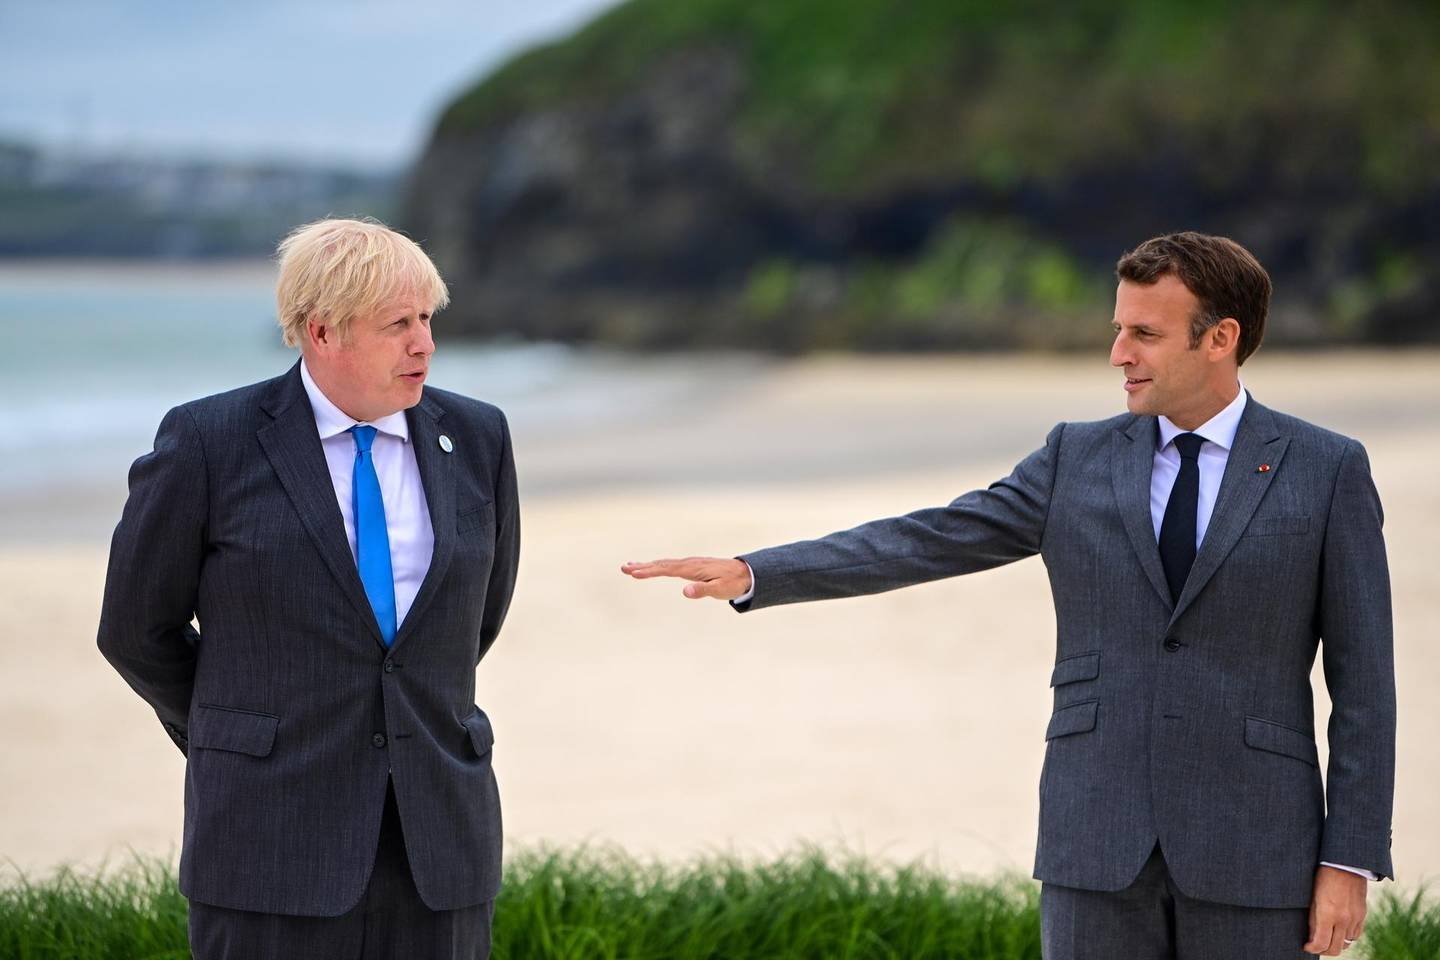 Emmanuel Macron, France's president, right, gestures to Boris Johnson, U.K. prime minister, on the first day of the Group of Seven leaders summit in Carbis Bay, U.K., on Friday, June 11, 2021. U.K. Prime Minister Boris Johnson will give leaders a beachside welcome, formally kicking off three days of summitry along the English coast after meeting U.S. President Joe Biden for the first time on Thursday.  Photographer: Neil Hall/EPA/Bloomberg